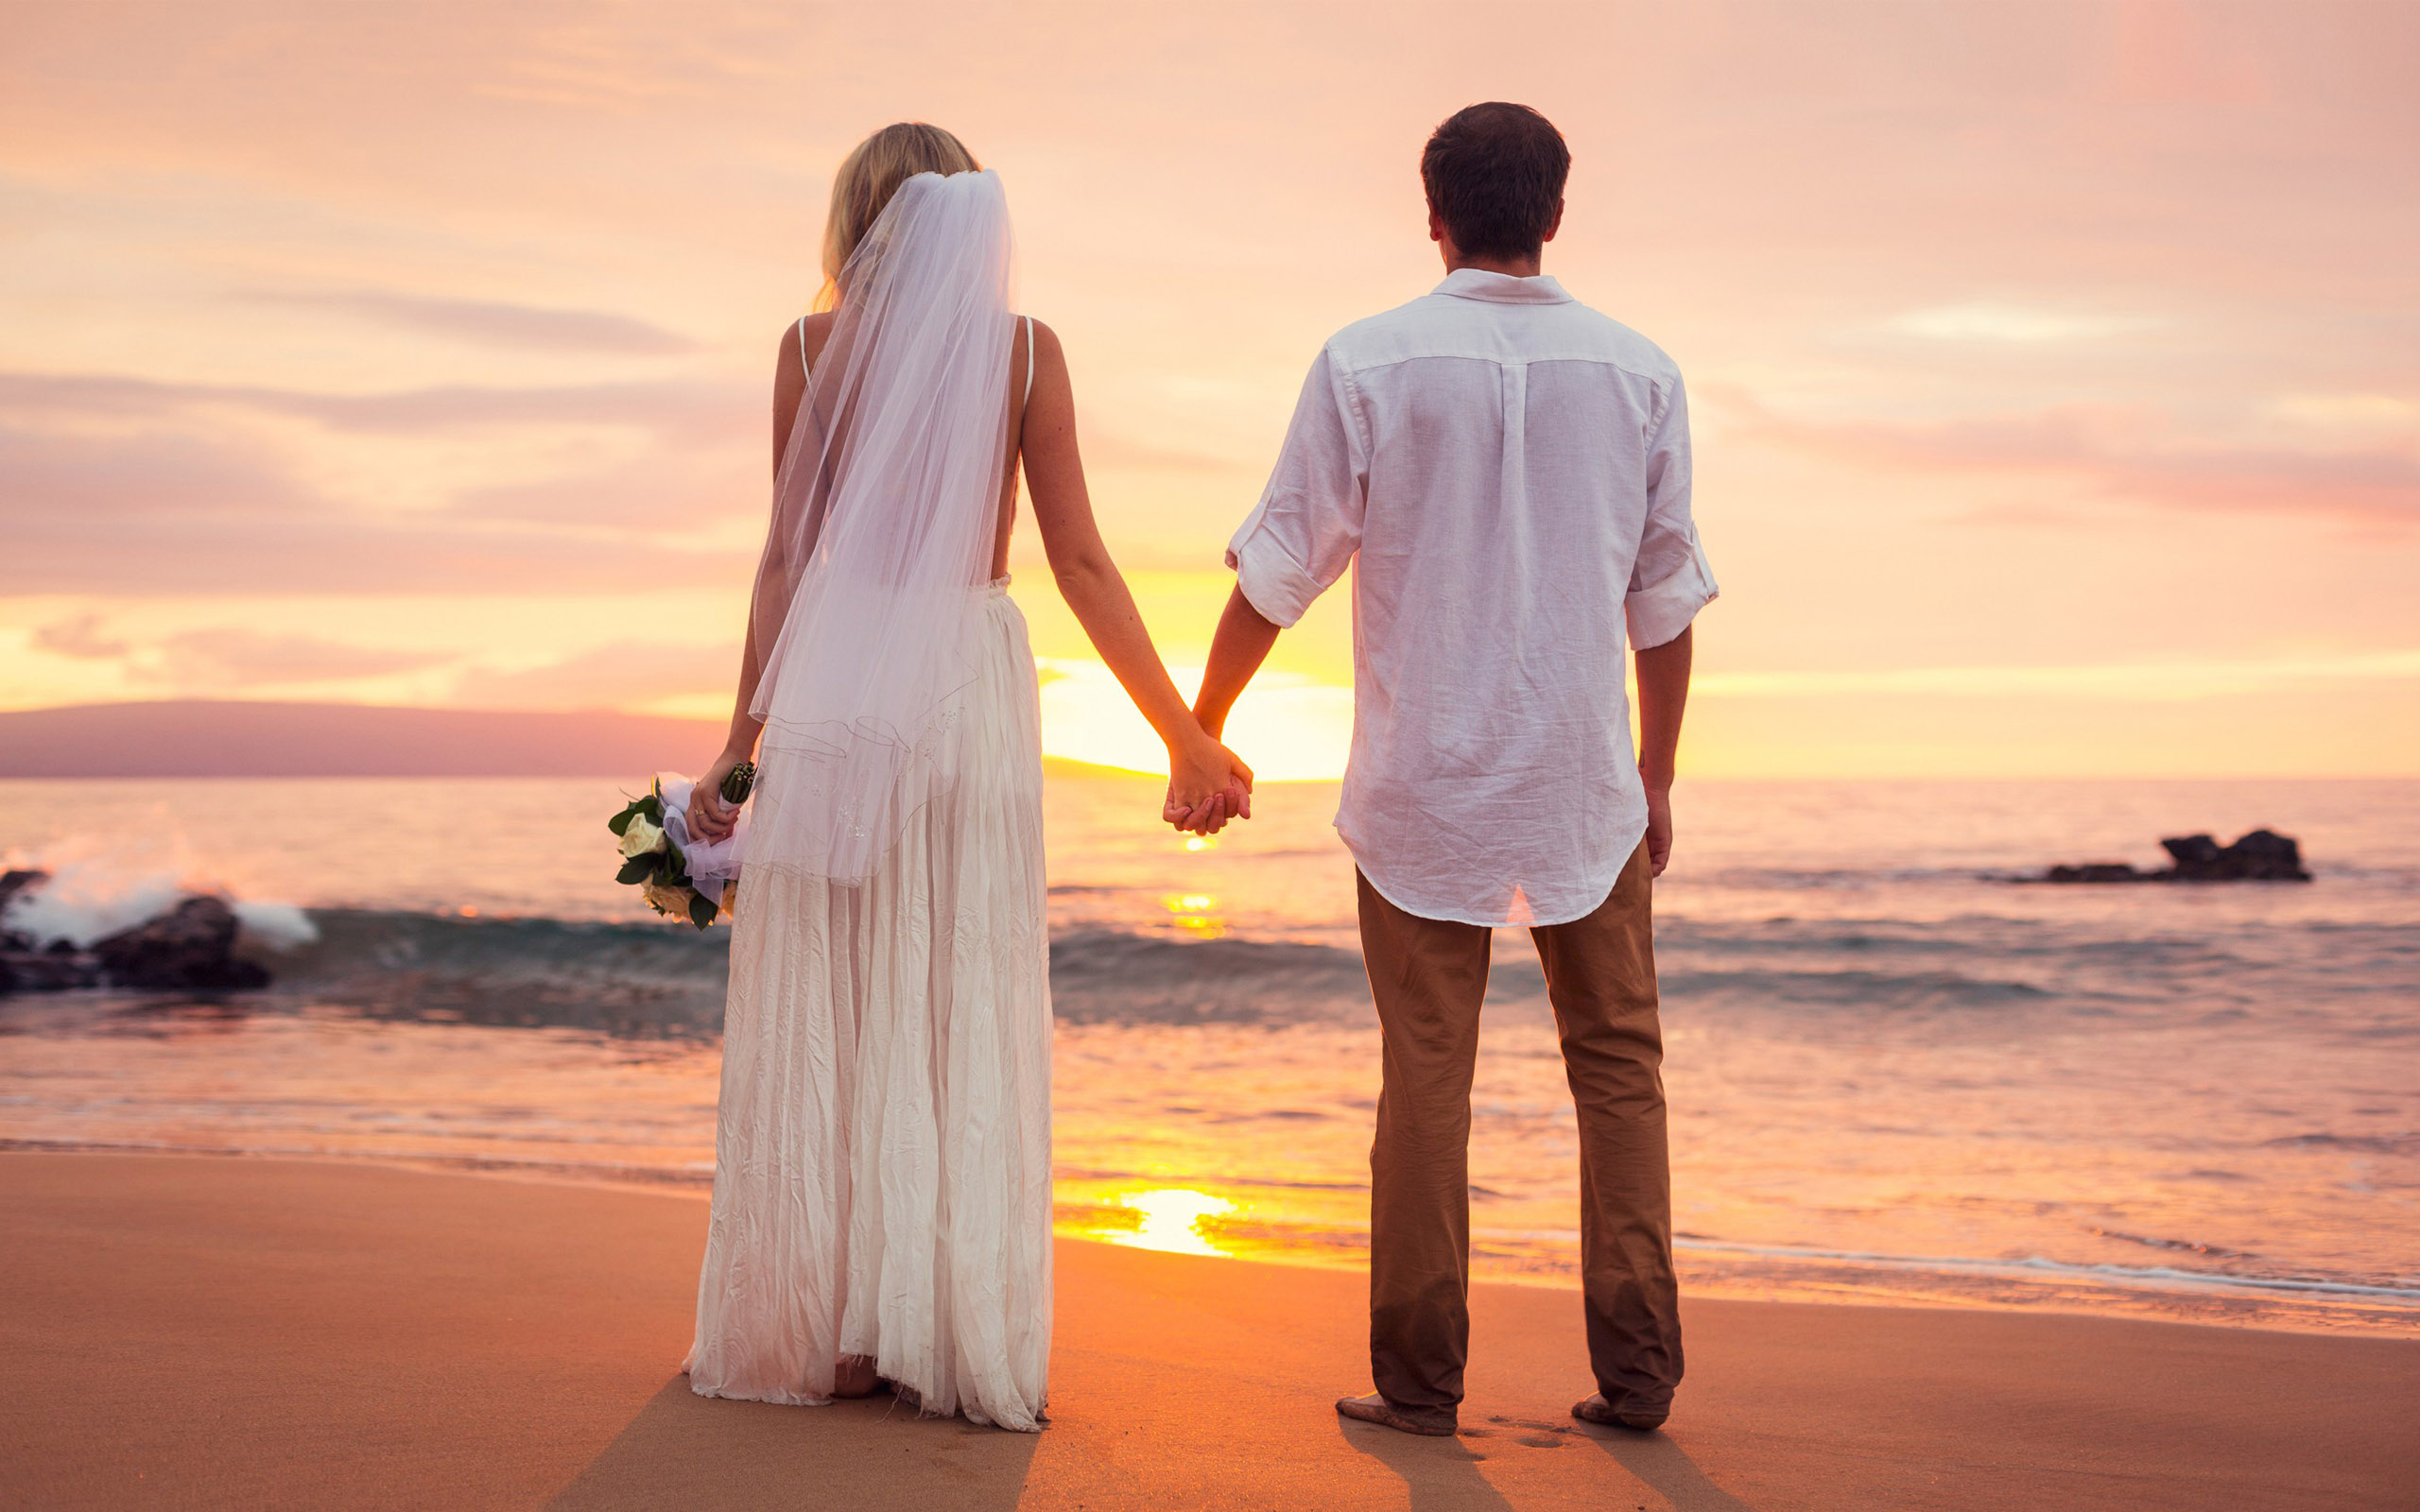 Cute Couples Holding Hands Wallpapers Love Couple Had Just Married Sea Beach Sunset Hd Love